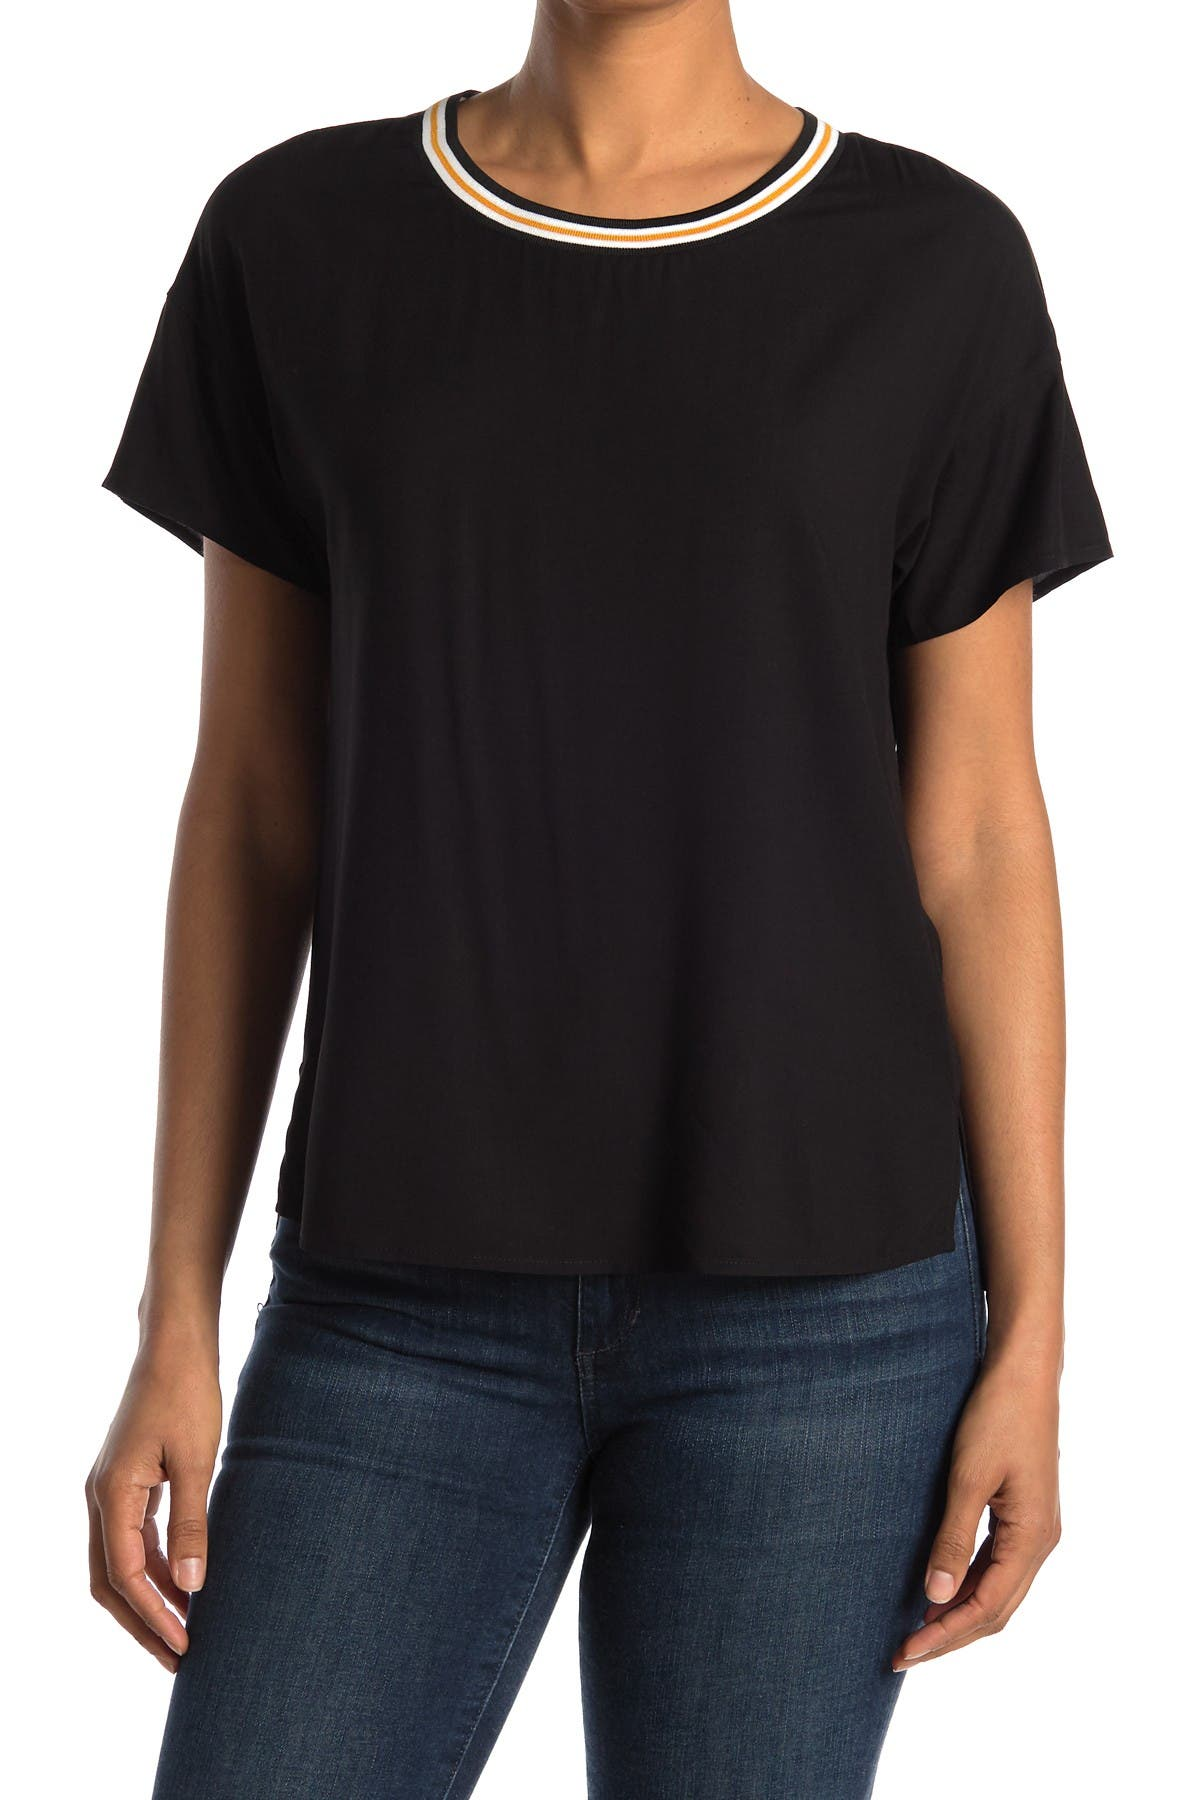 Image of DR2 by Daniel Rainn Sporty Trim Drop Sleeve T-Shirt